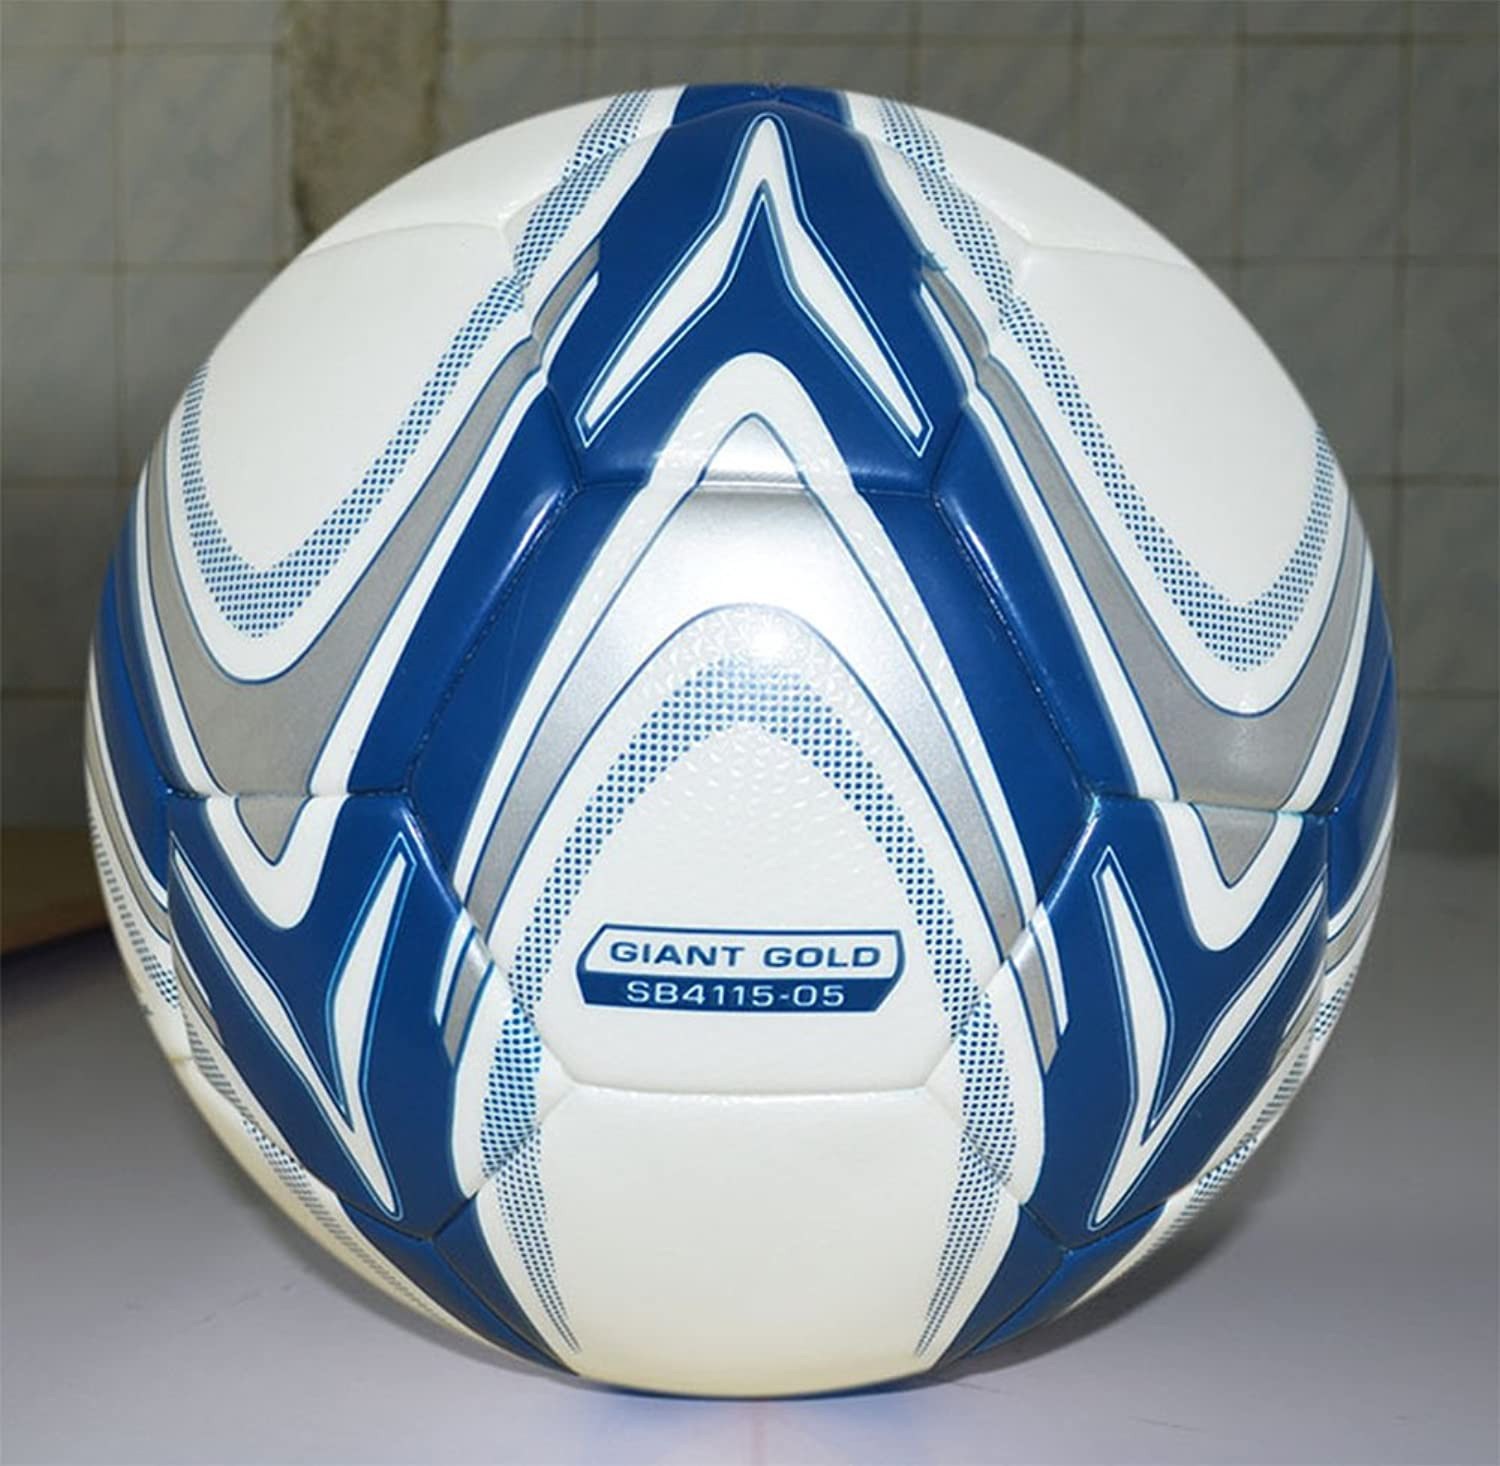 Soccer Ball Size 5 The Official Size and Weight of The World Cup Can Be Used Indoors and Outdoors Waterproof and Wear Resistant, Elastic and Kick Resistant